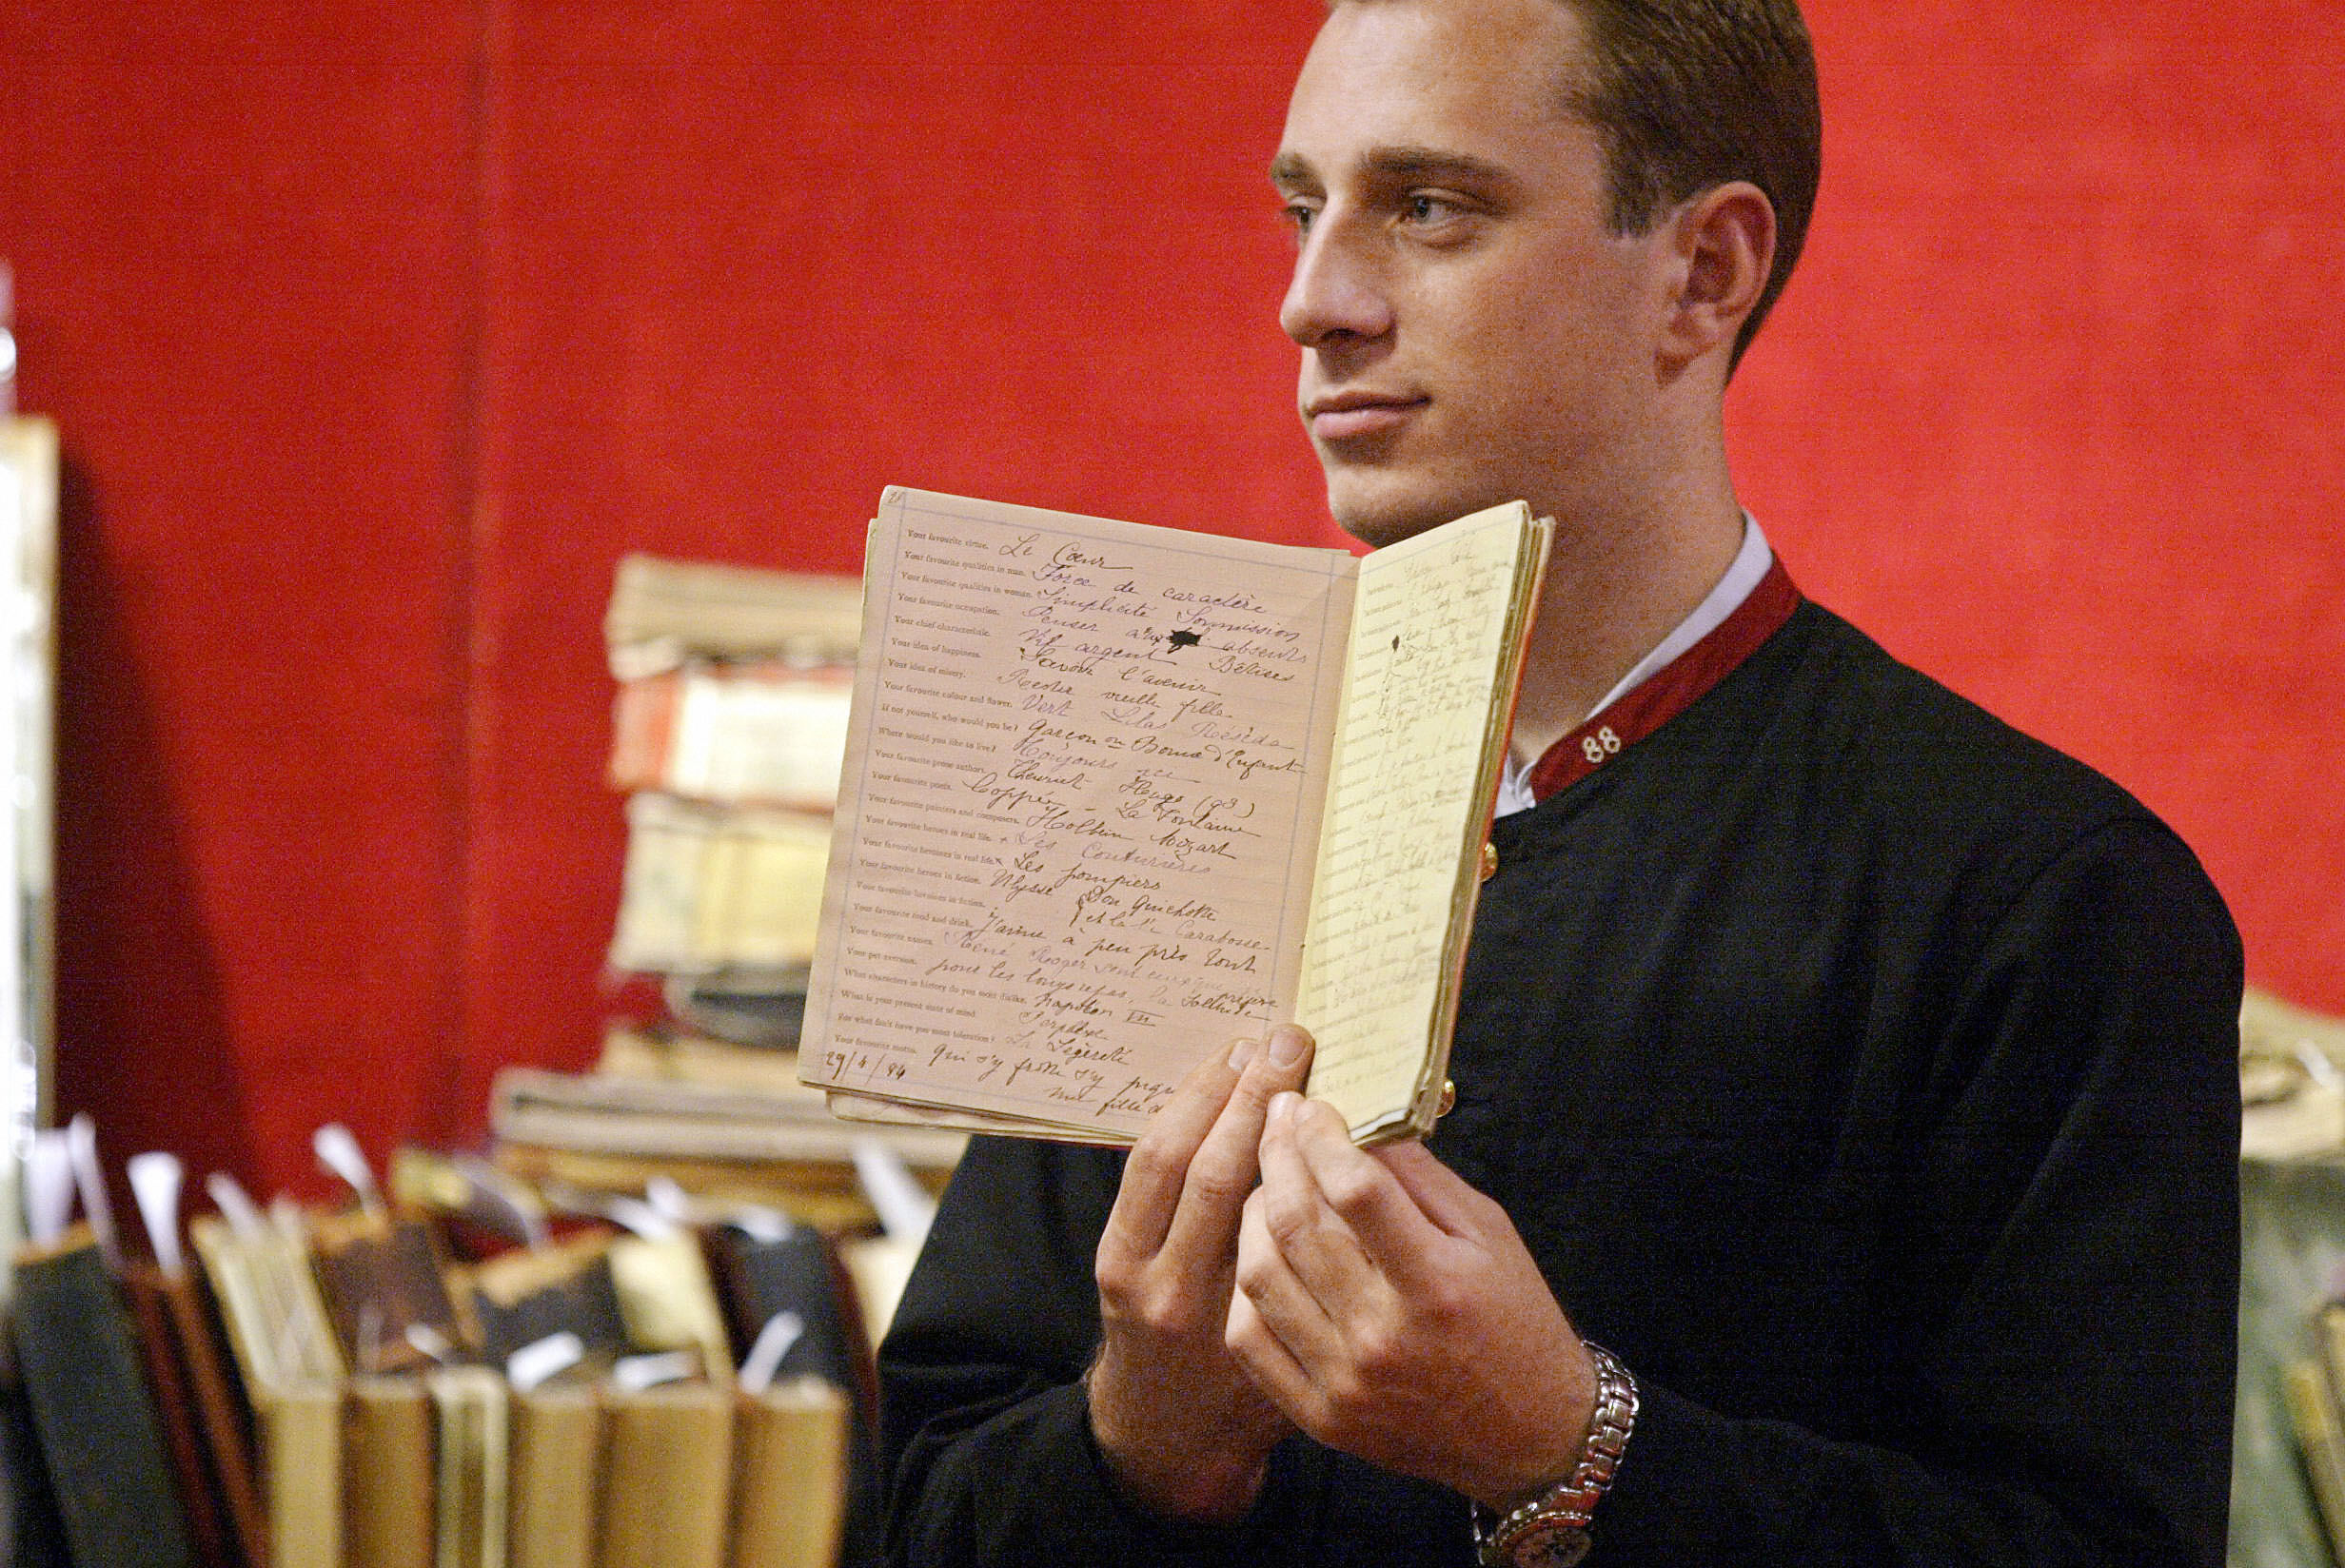 A porter holds up the manuscript of Marcel Proust's questionaire, 27 May 2003 put up for sale in Paris by Beaussant-Lefevre auction house at Drouot hotel in Paris. The manuscript from 1884-1887, conceived by Proust at 14, was sold 120.227 Euro, four time its estimate price, to French designer Gerard Darel.